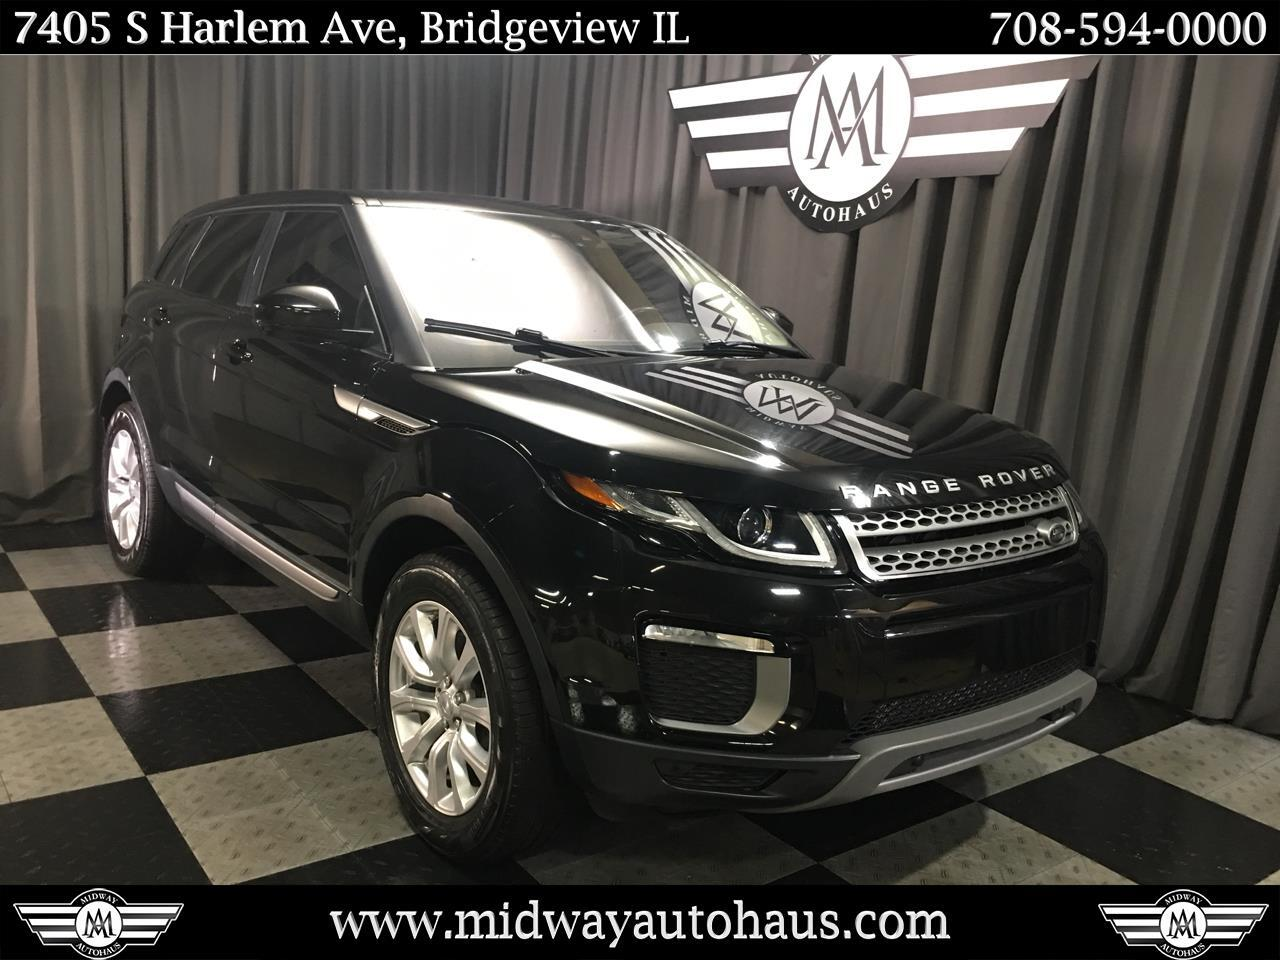 Pre-Owned 2016 Land Rover Range Rover Evoque 5dr HB SE